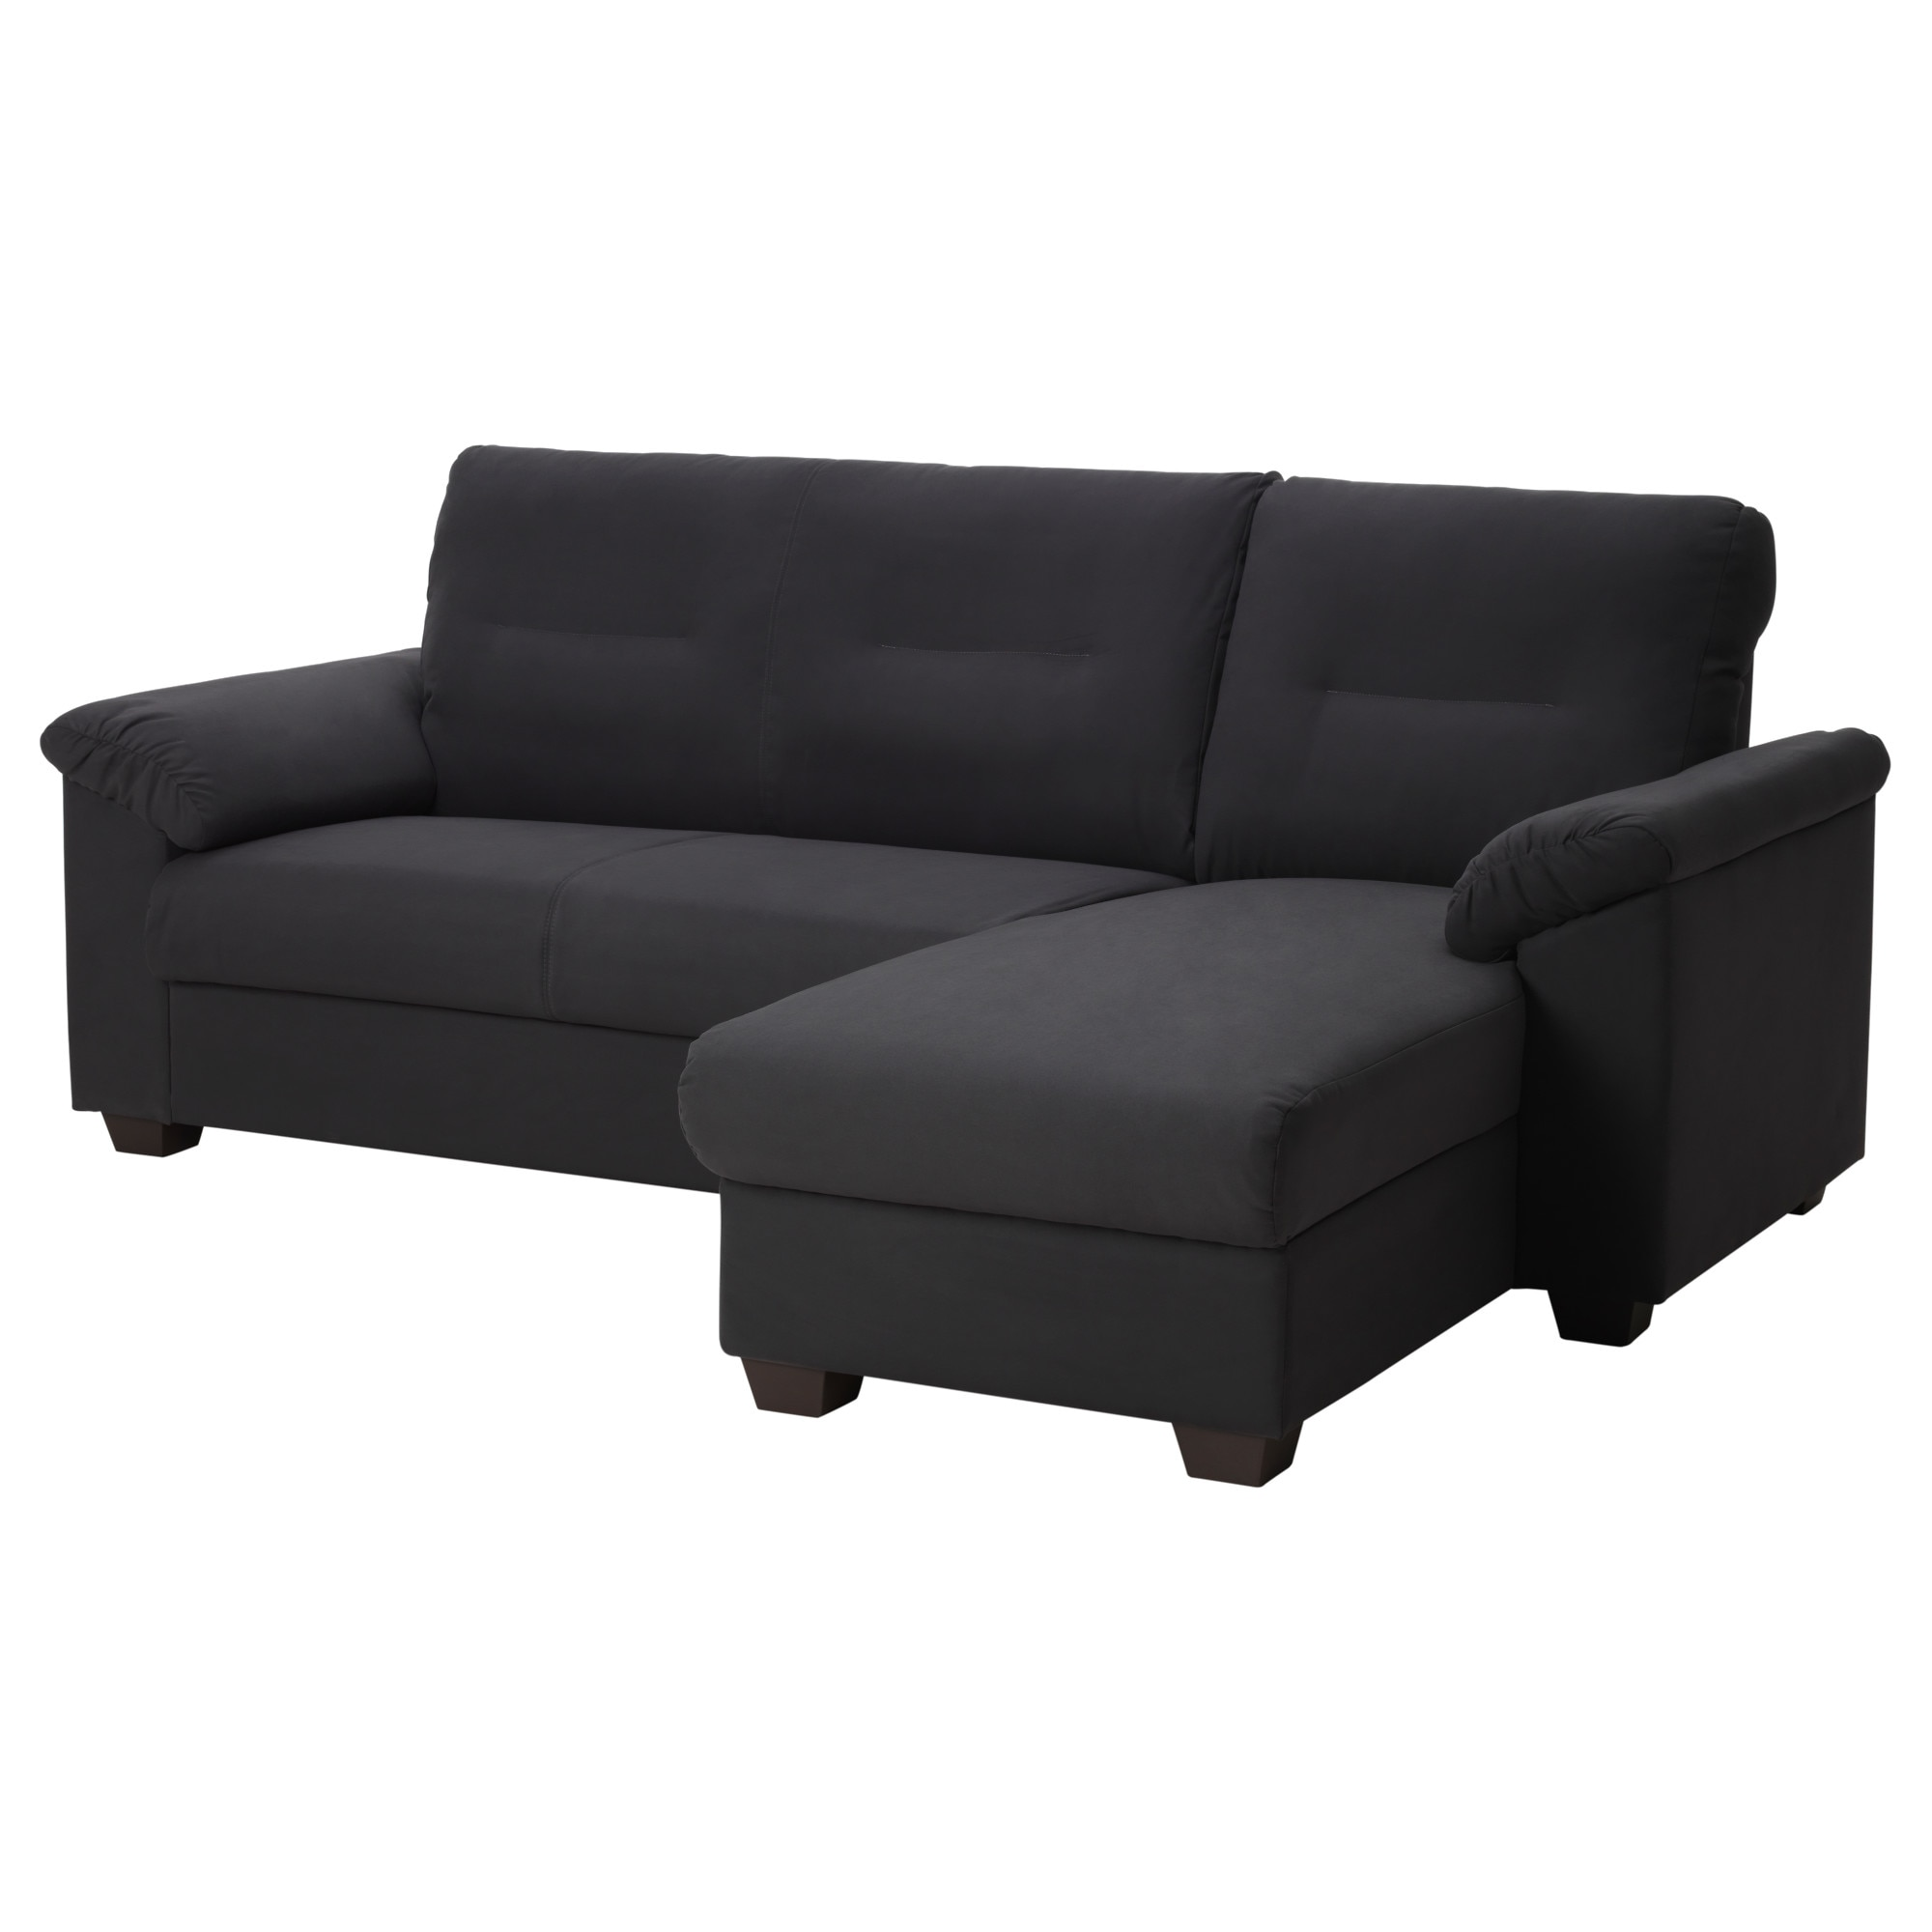 ikea sectional sofas sectional sofas ikea microfiber small modern ebay thesofa. Black Bedroom Furniture Sets. Home Design Ideas